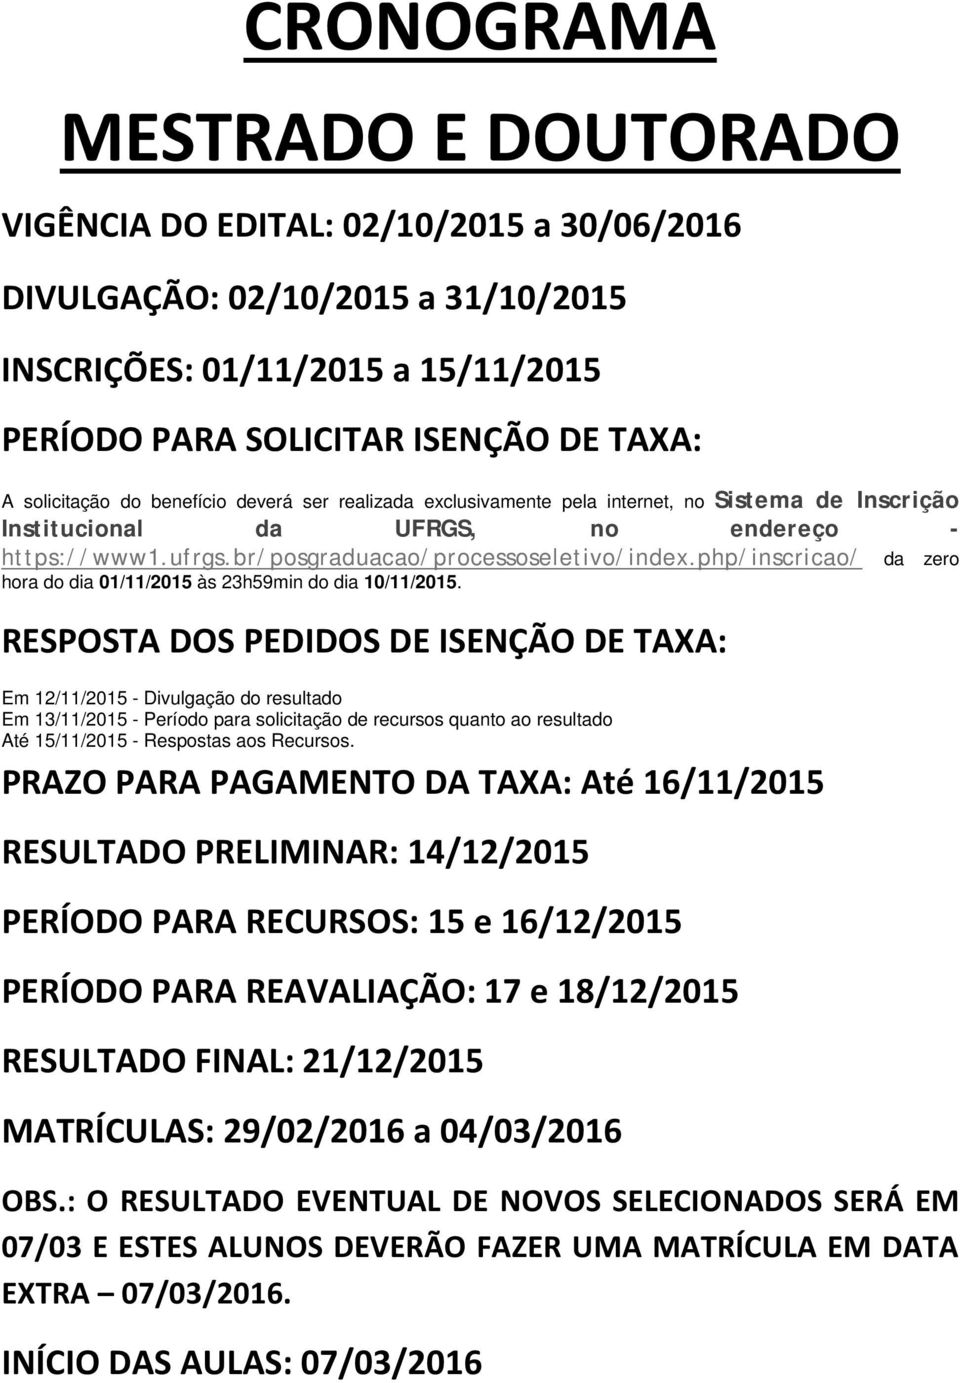 php/inscricao/ da zero hora do dia 01/11/2015 às 23h59min do dia 10/11/2015.